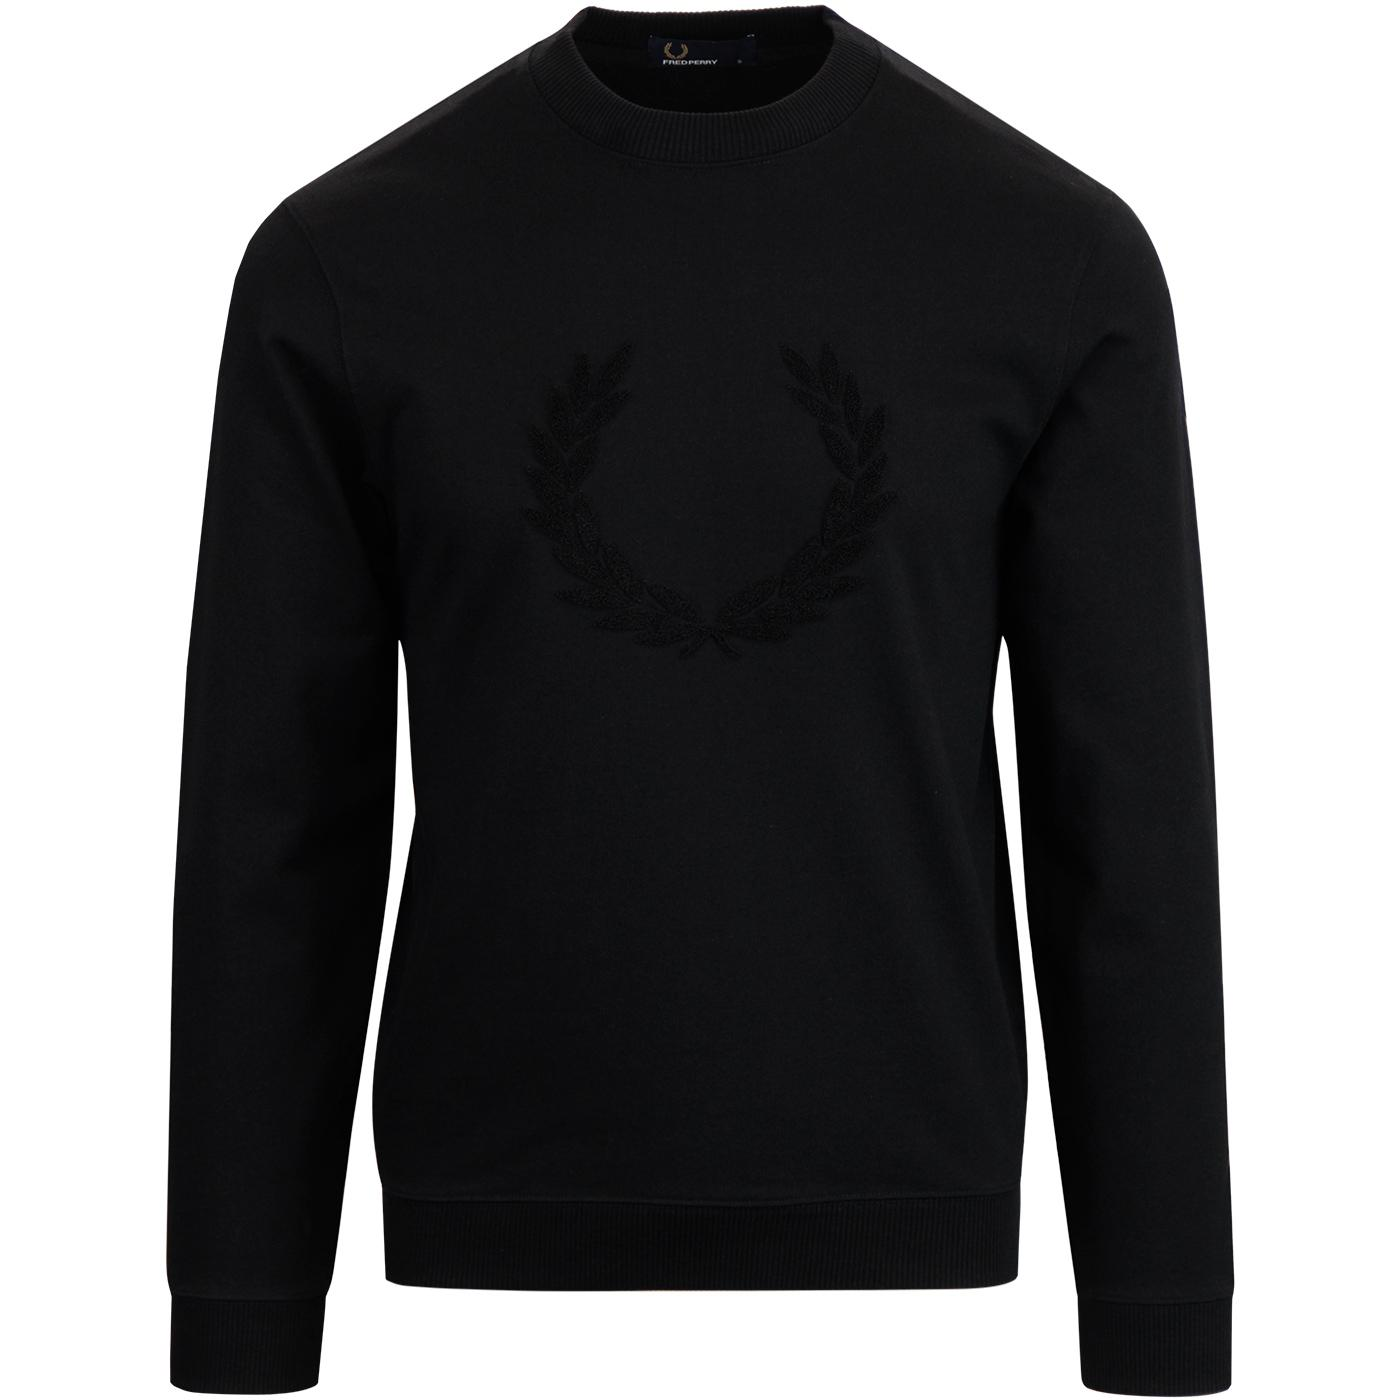 FRED PERRY Retro Textured Laurel Wreath Sweatshirt